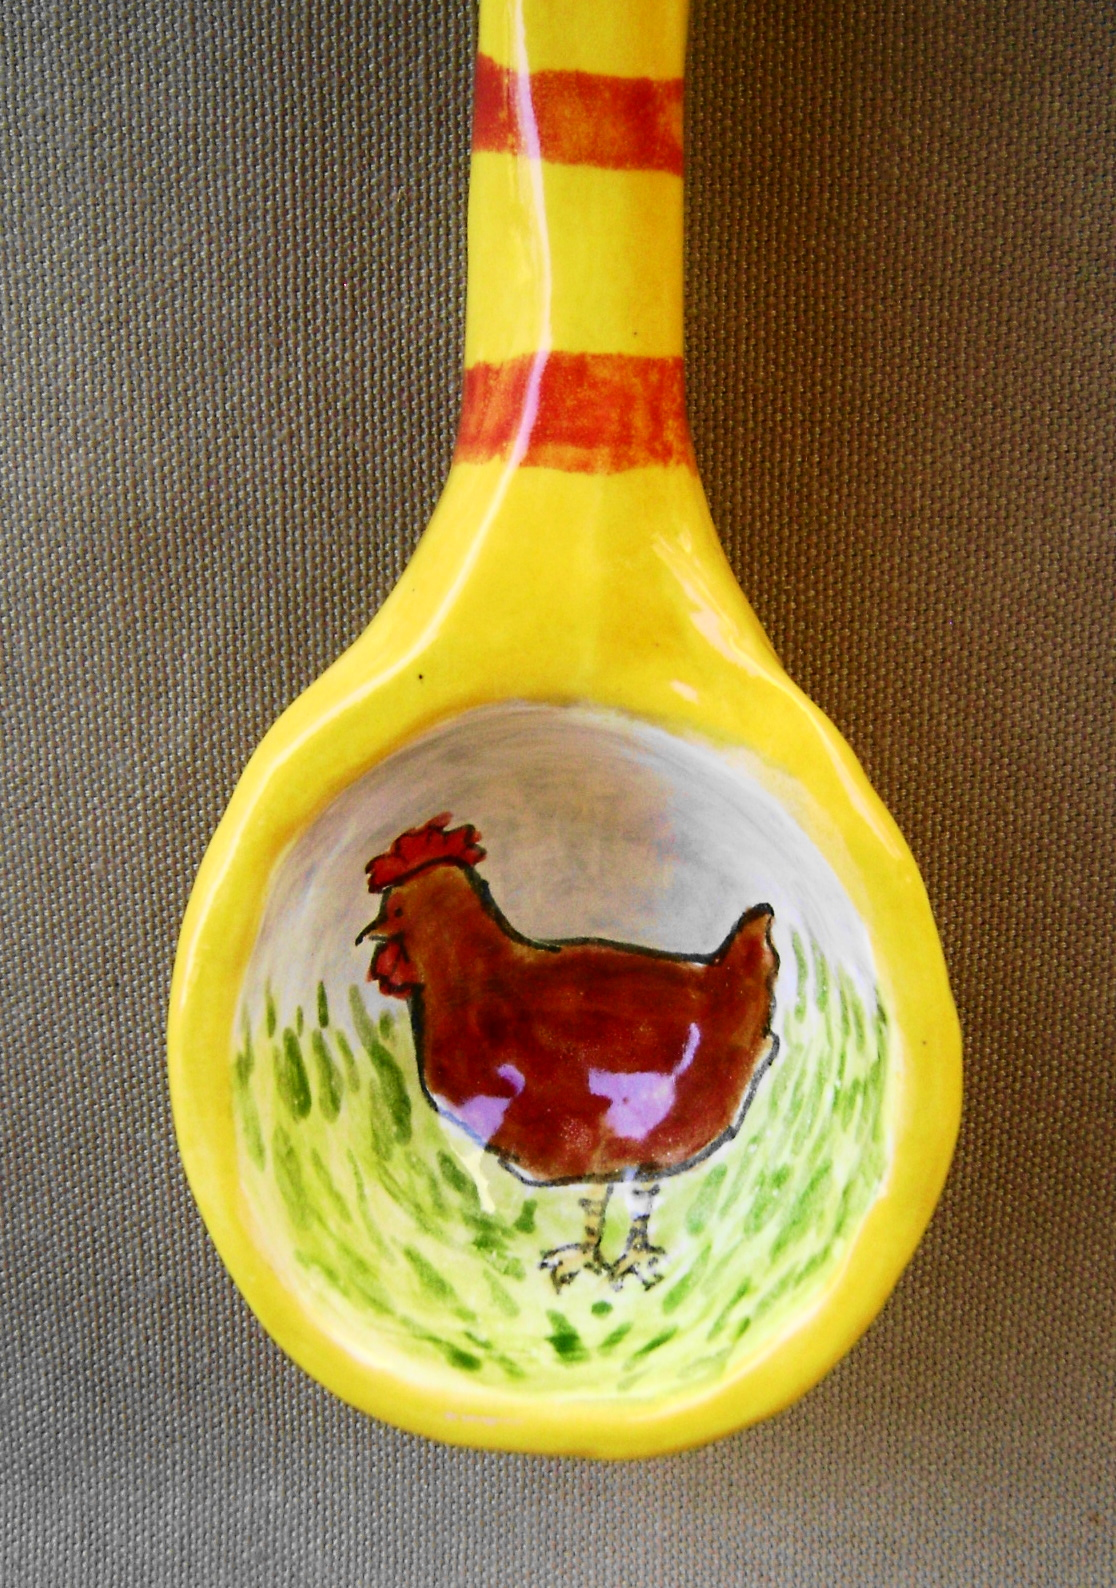 chicken spoon close up